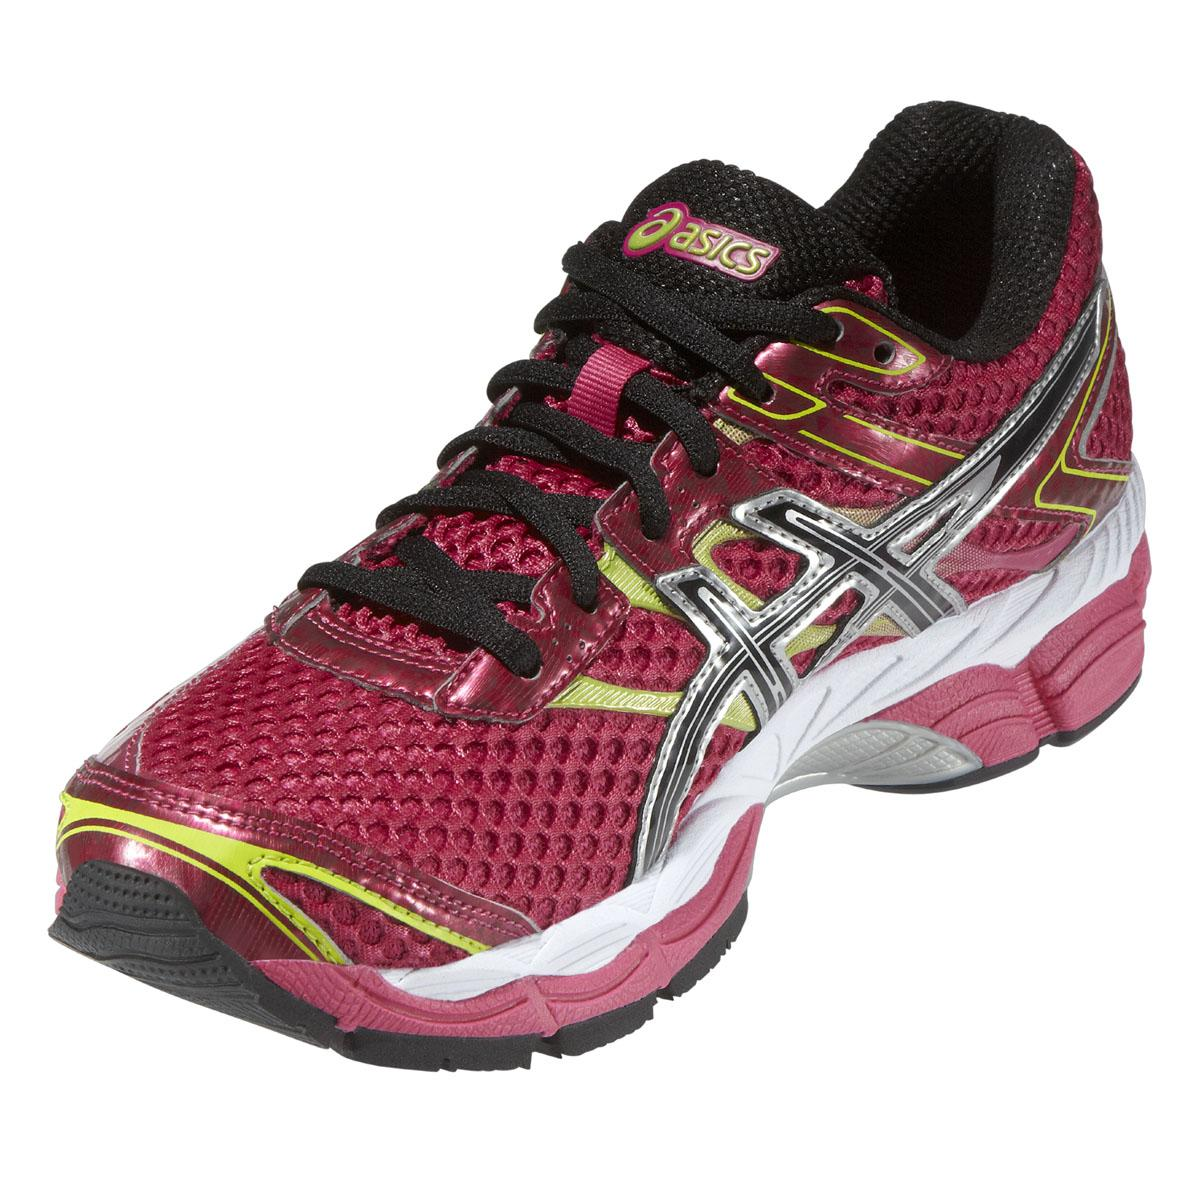 asics womens gel cumulus 16 running shoes raspberry. Black Bedroom Furniture Sets. Home Design Ideas